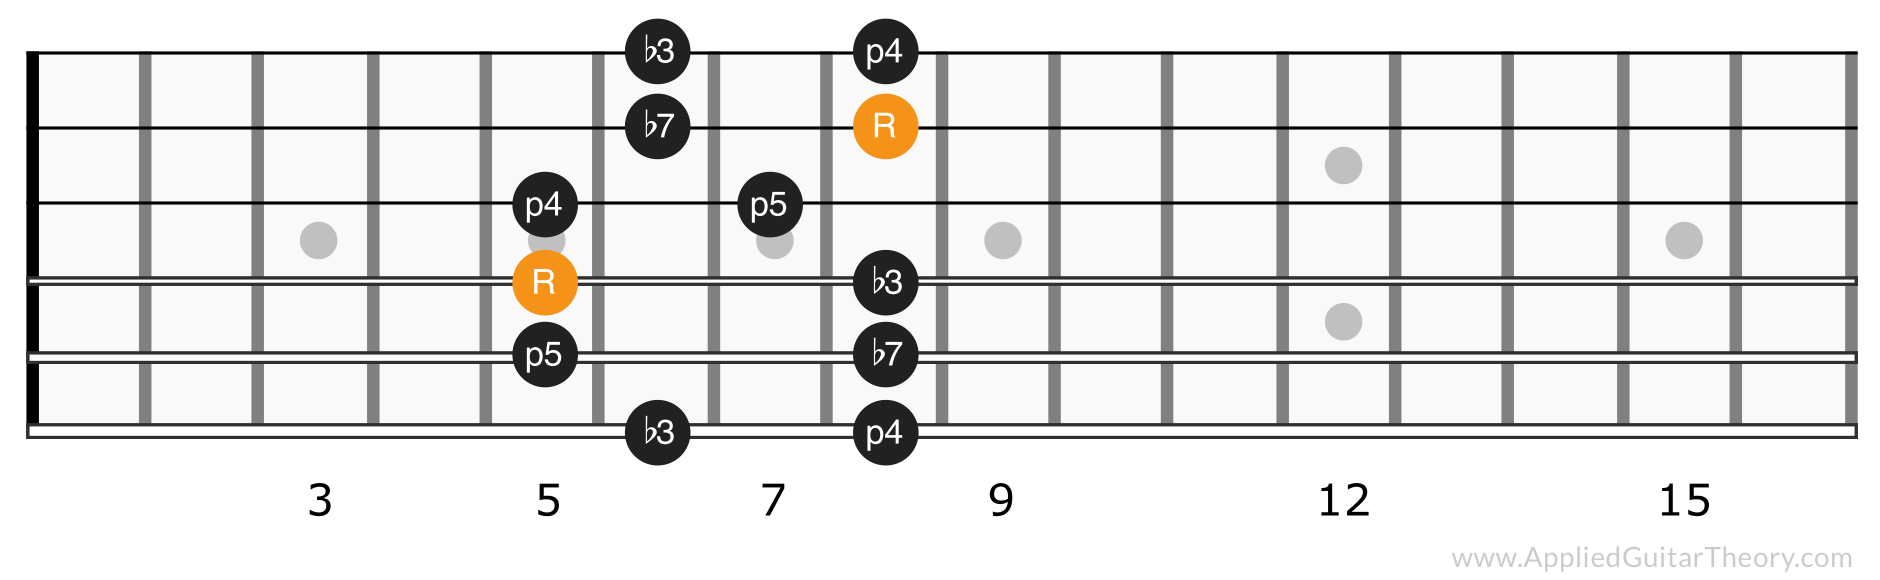 Minor pentatonic scale position 2